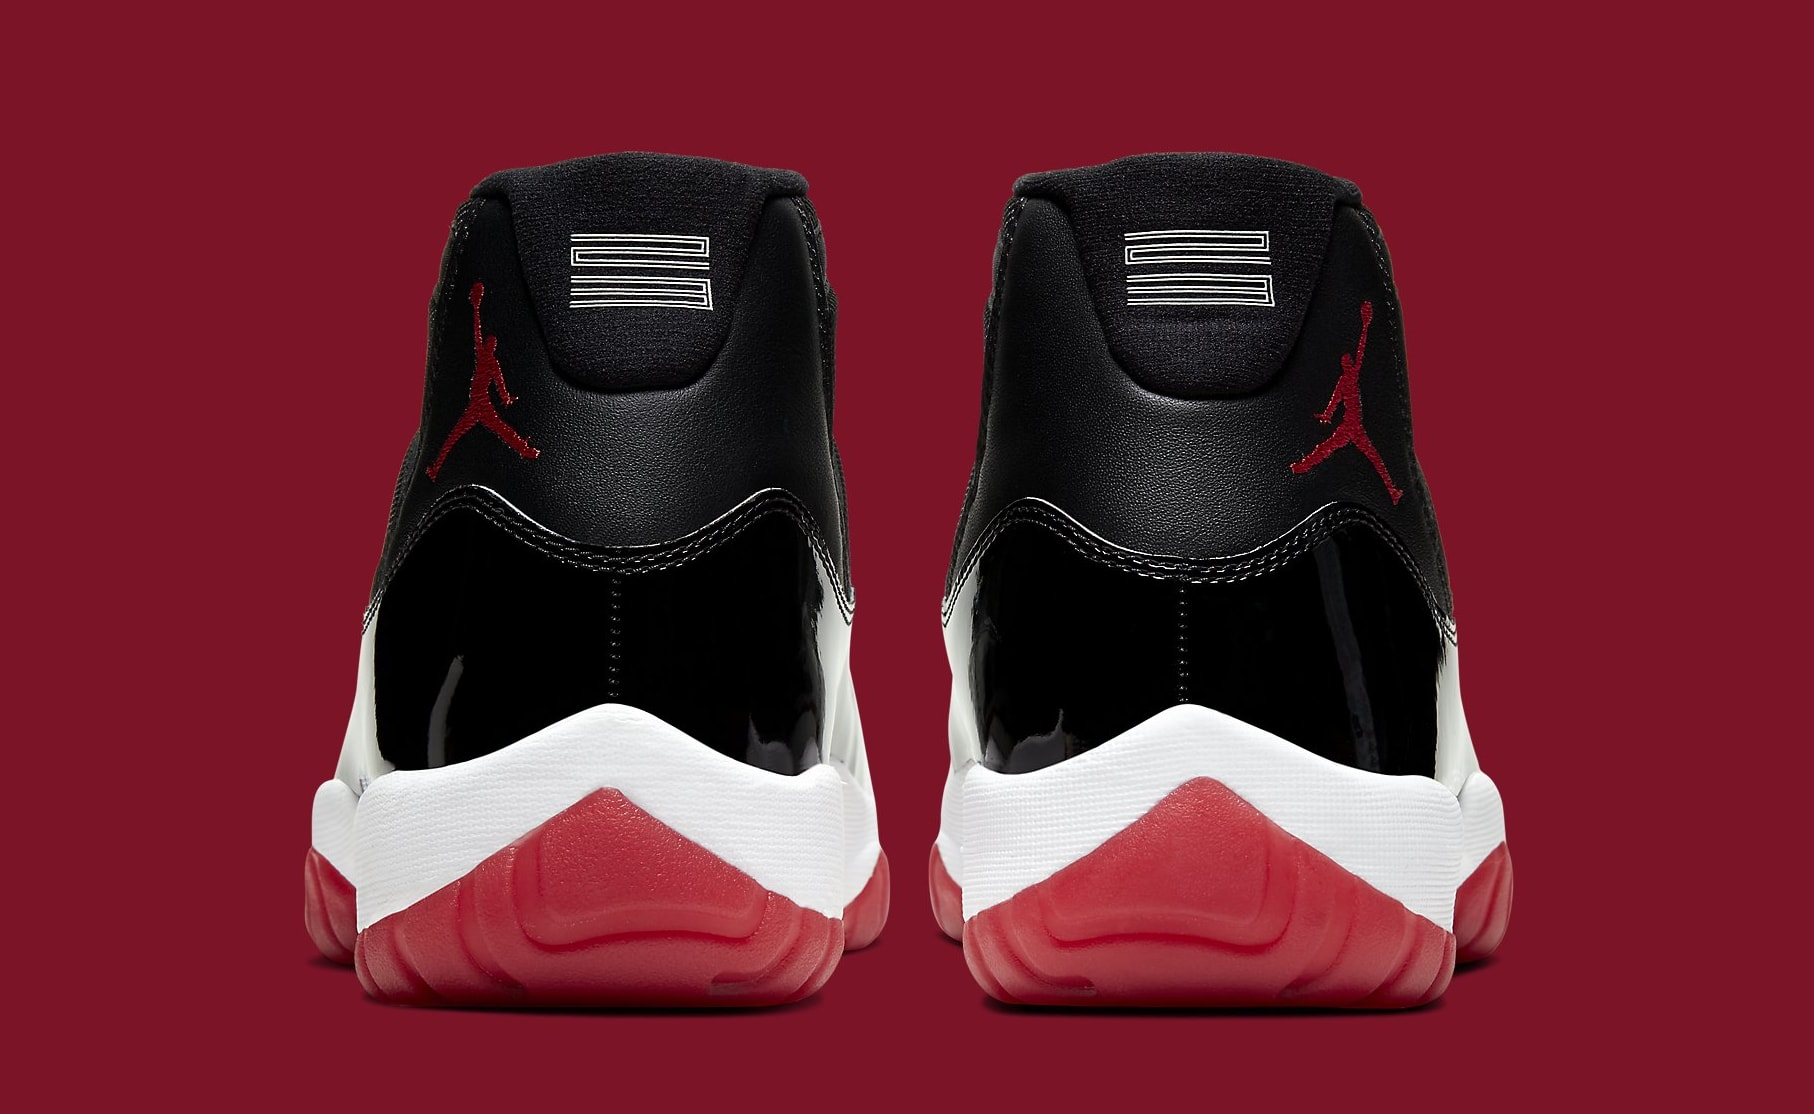 Air Jordan 11 Xi Bred 2019 Release Date 378037 061 Sole Collector